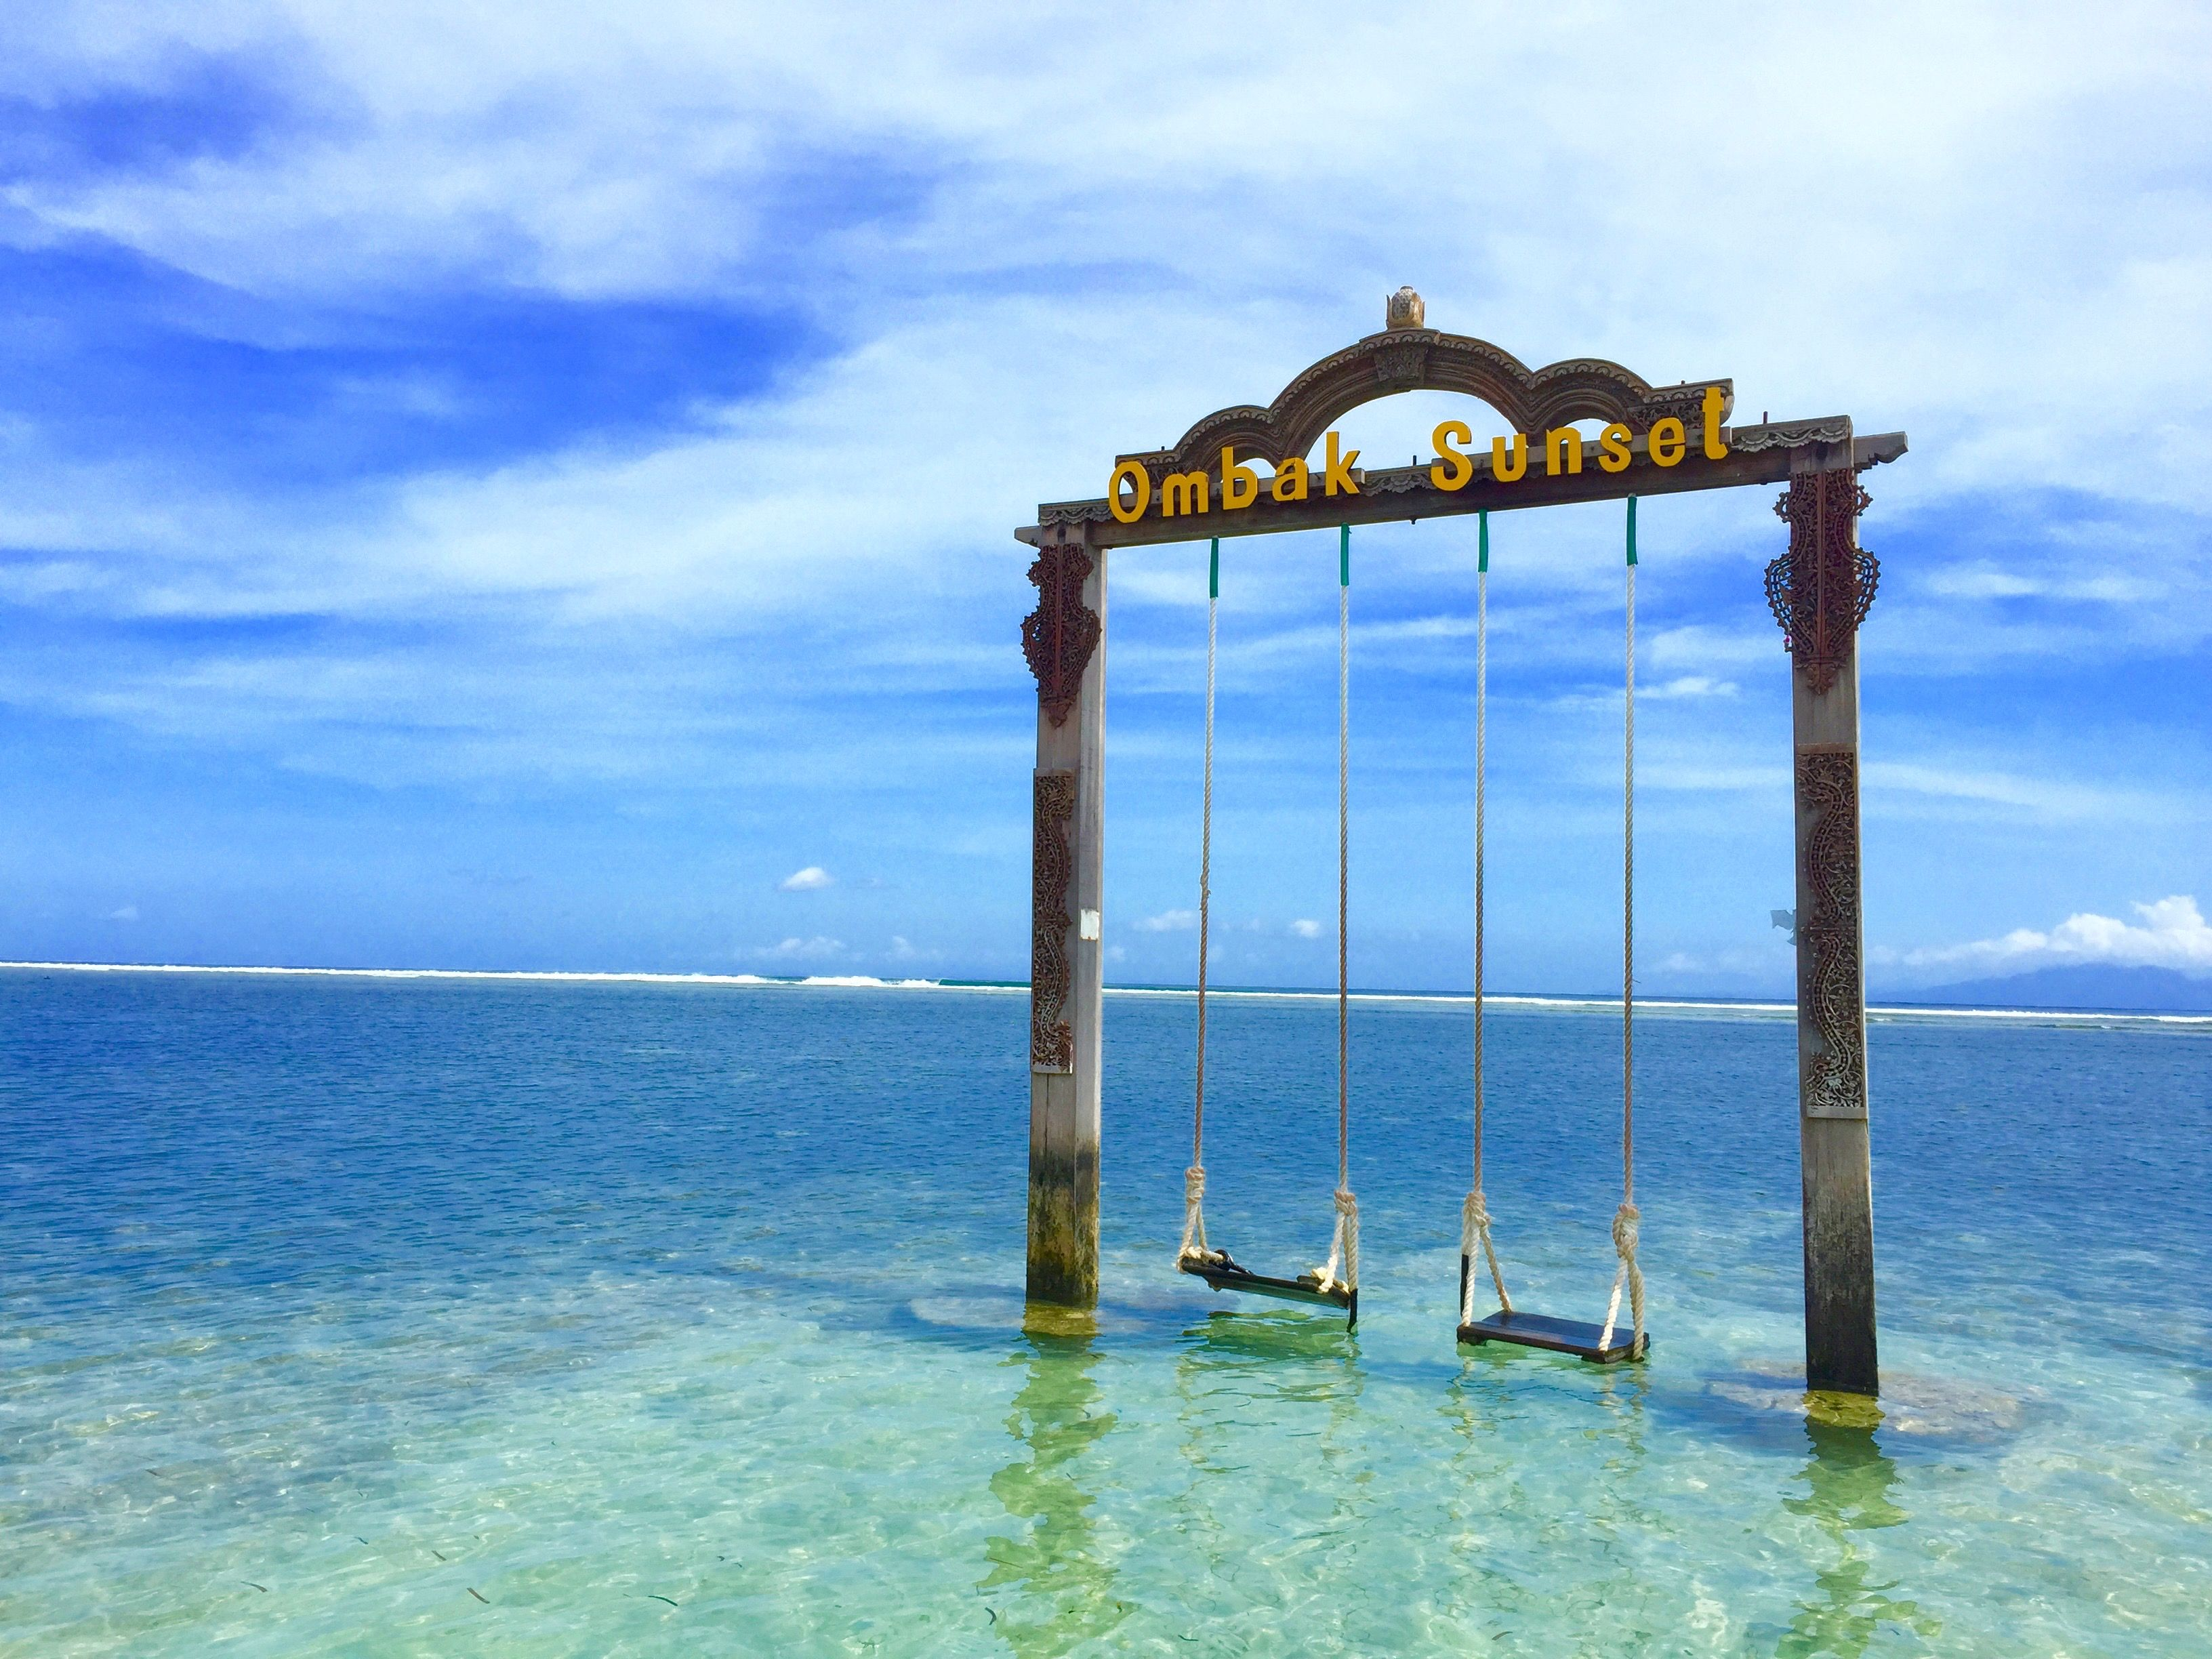 Ombak Sunset Hotel, Indonesia l Ombak Sunset Swing Gili Trawangan Lombok Indonesia